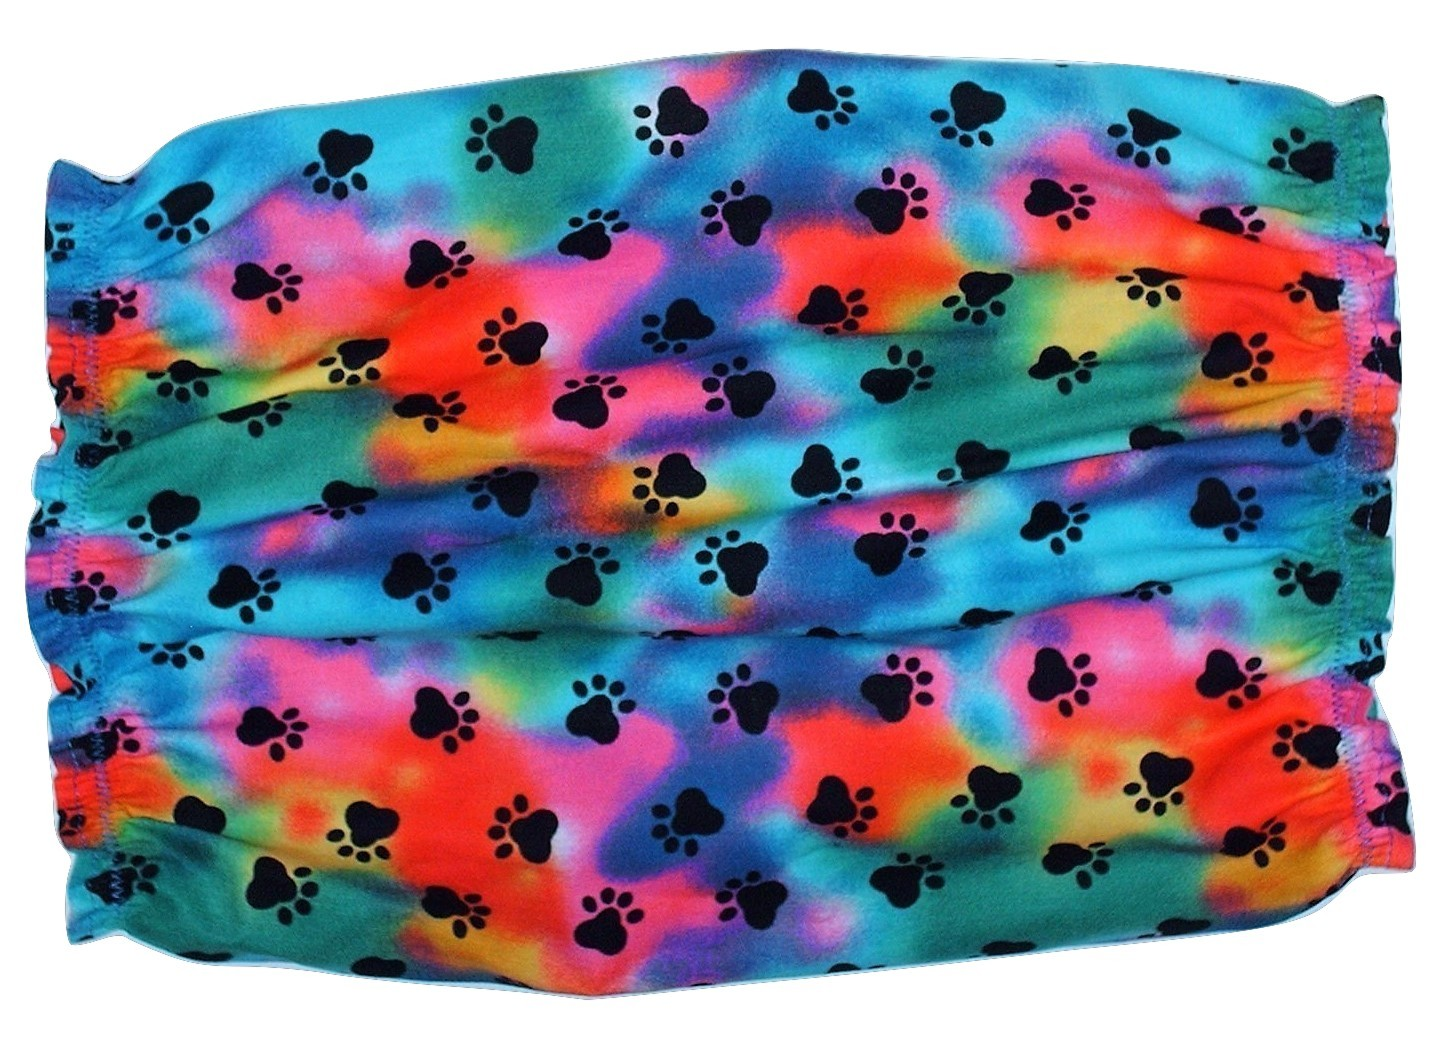 Dog Snood Rainbow Tie Dye Black Paw Prints Cotton by Howlin Hounds Size Large image 3